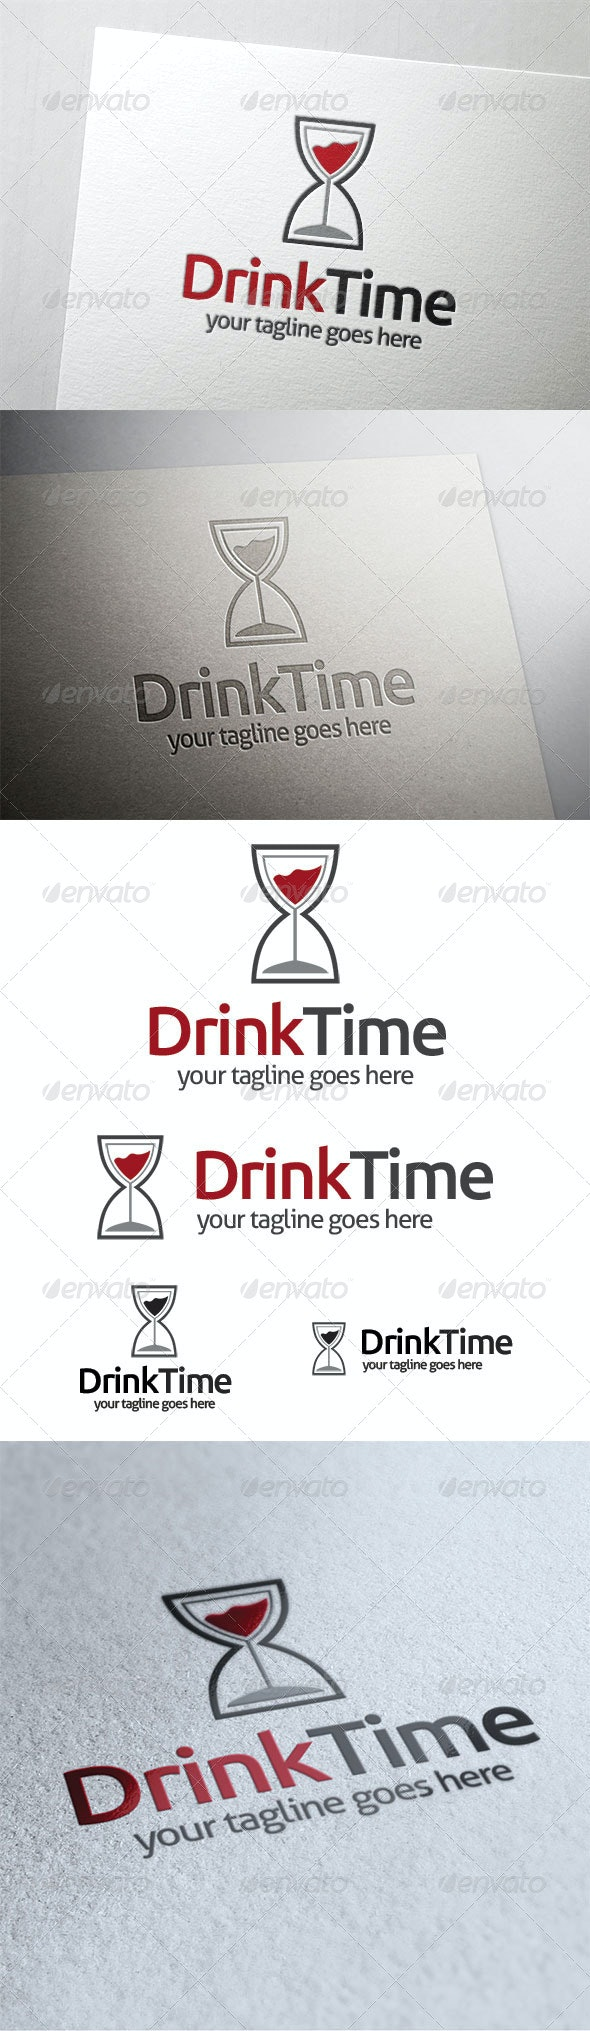 Drink Time - Symbols Logo Templates